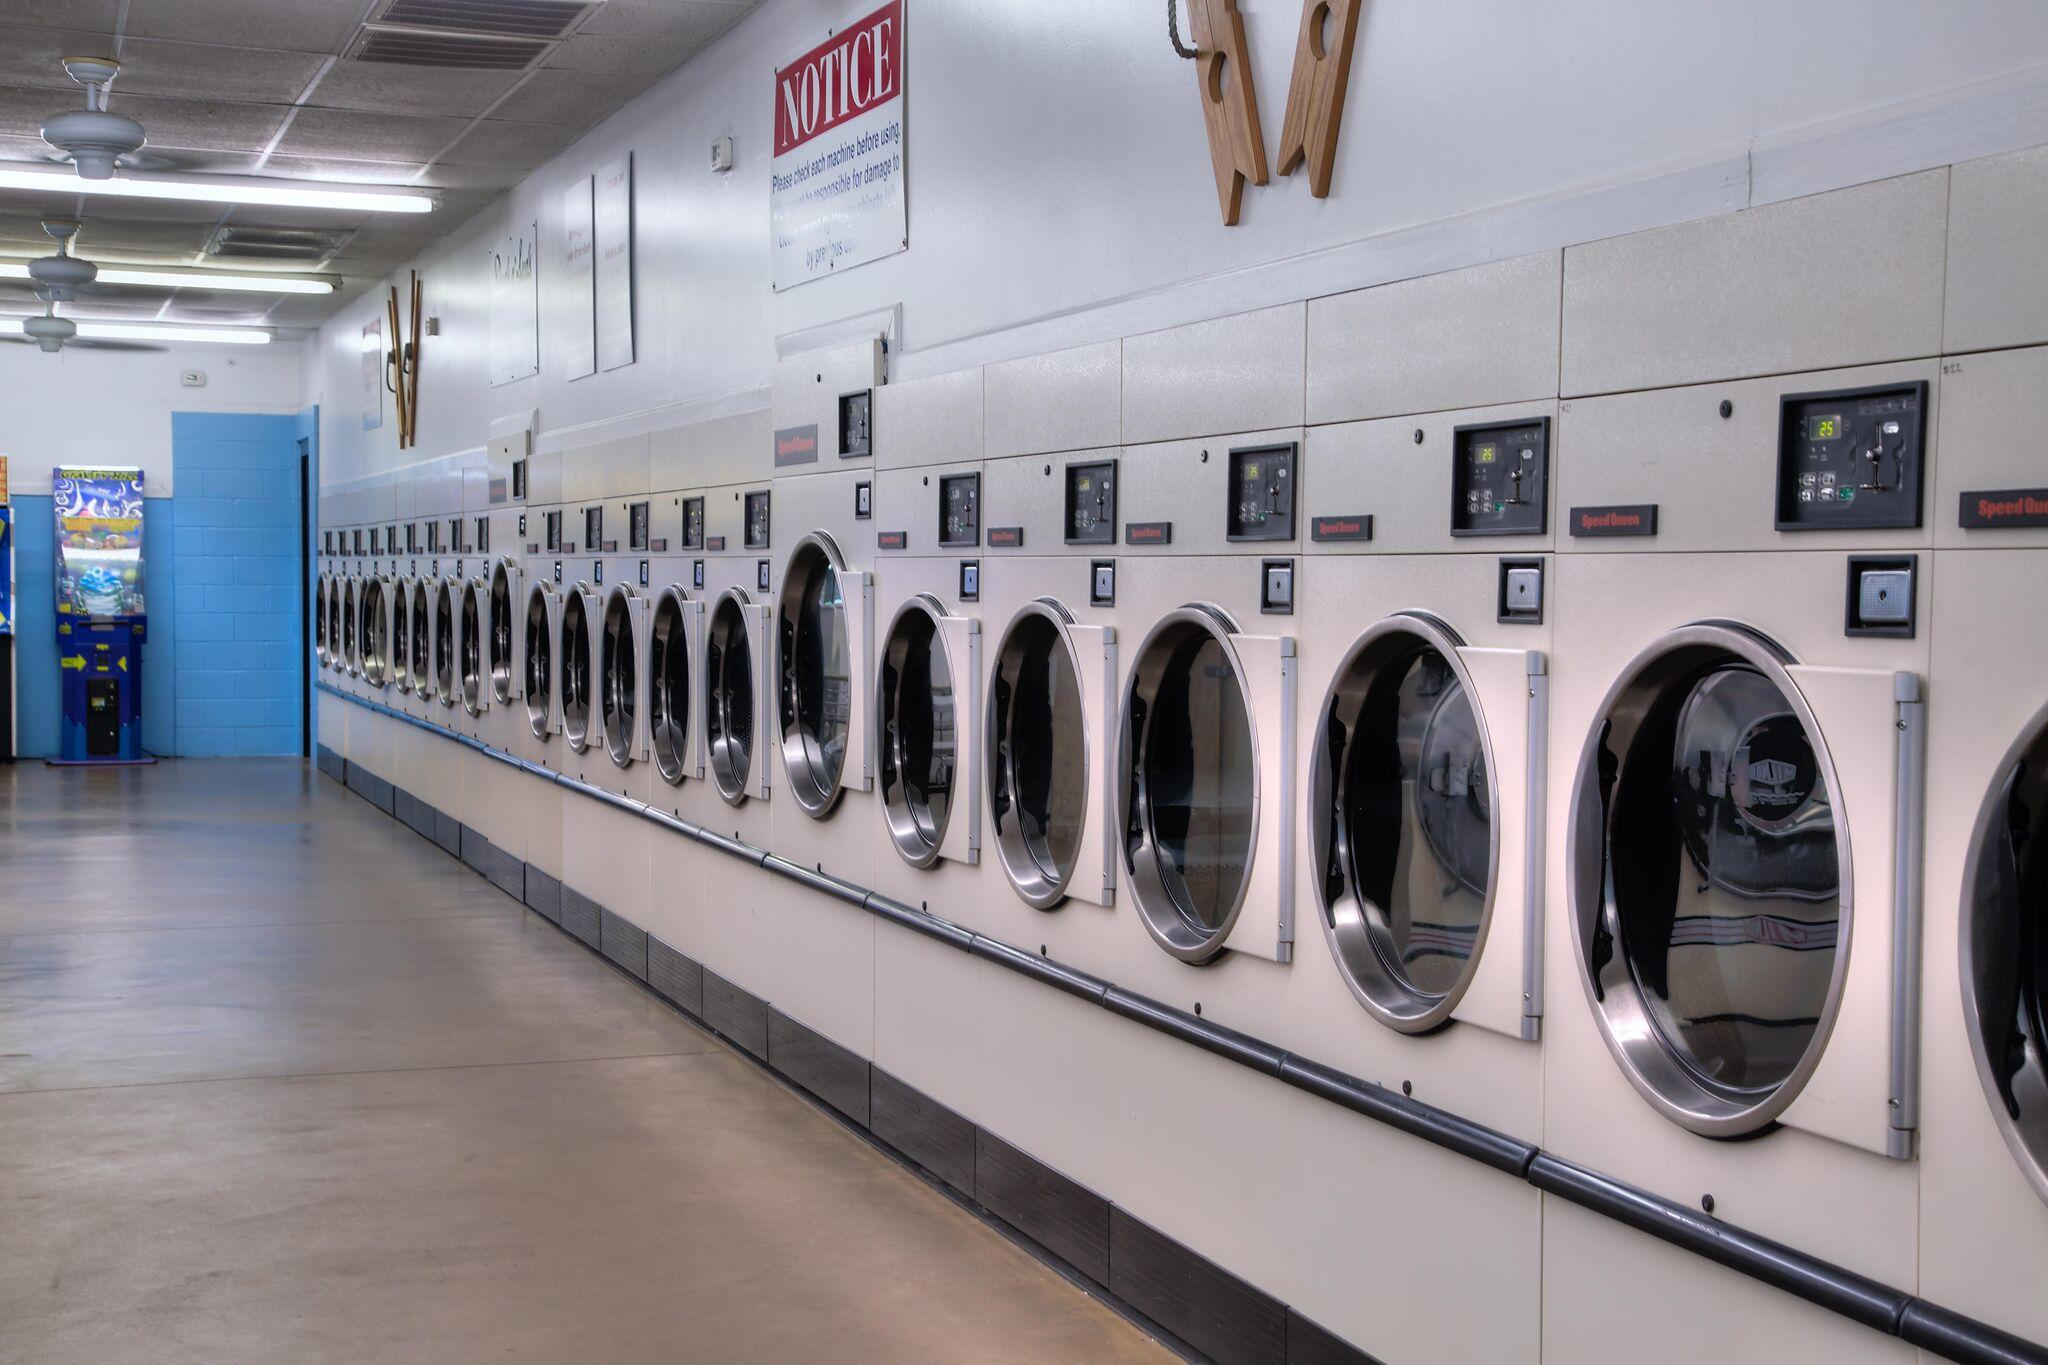 Duds N Suds Laundry image 12